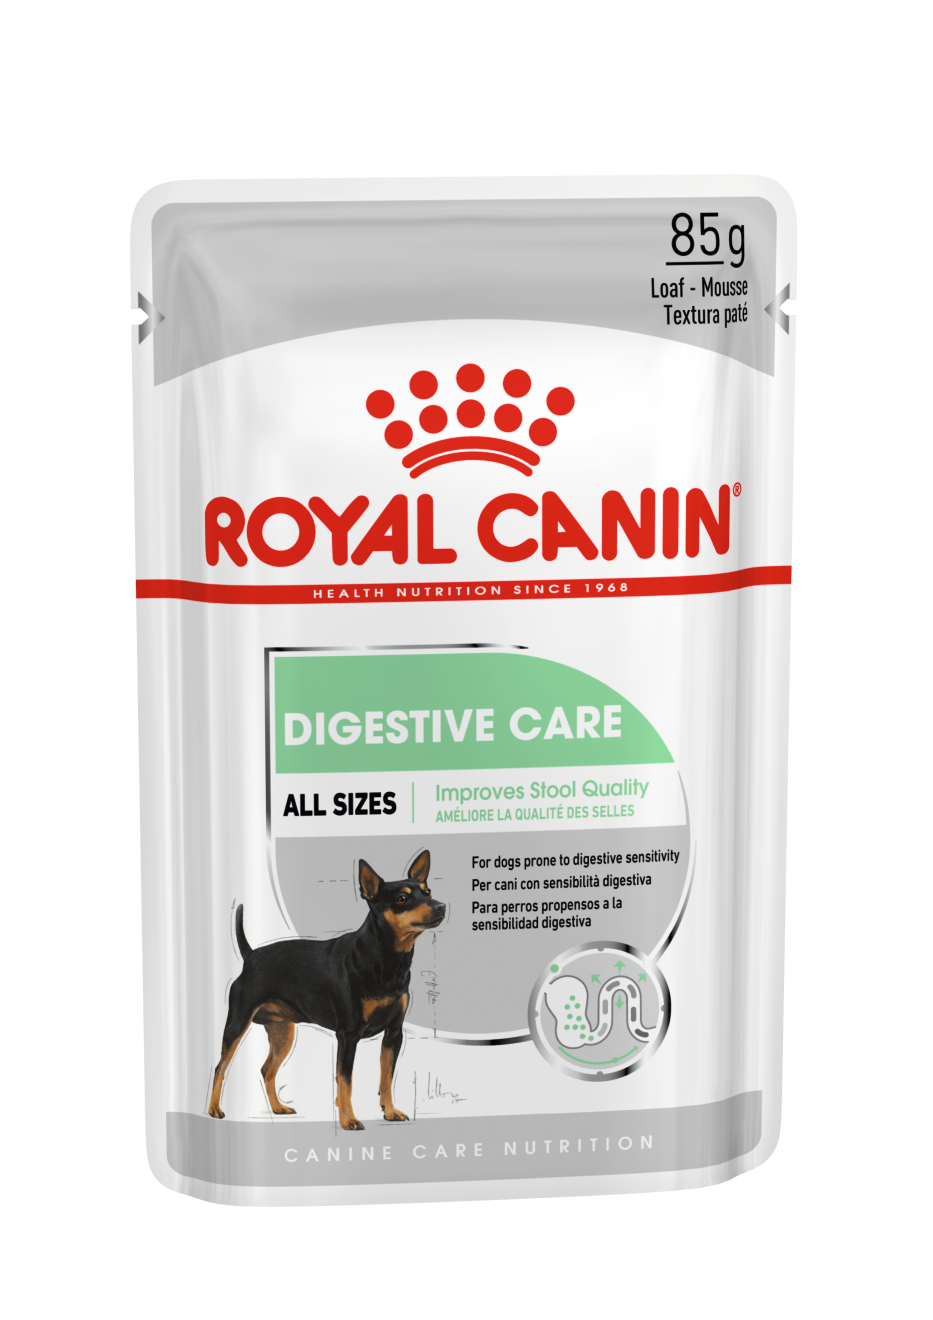 Royal Canin Digestive Care Loaf Dog Food Pouch - Ofypets